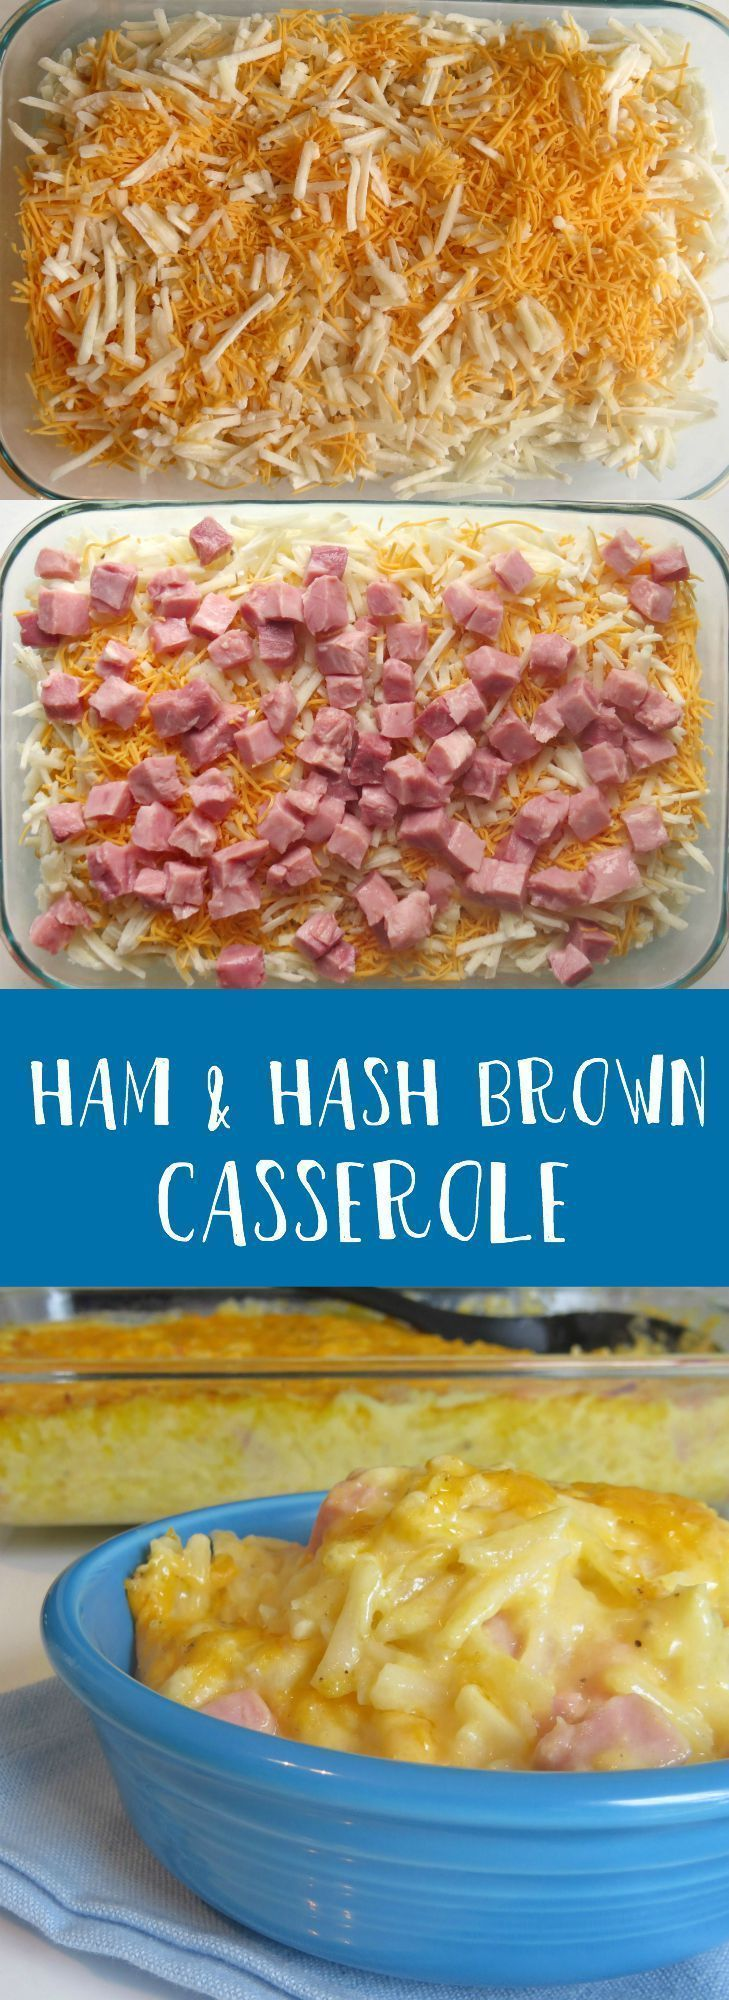 Ham Hash Brown Breakfast Casserole : This cheesy hash brown casserole recipe is a creamy family favorite that's filled with lots of cheddar cheese. If you're looking for a quick toss in the oven dinner idea, then this one will be your new favorite find.